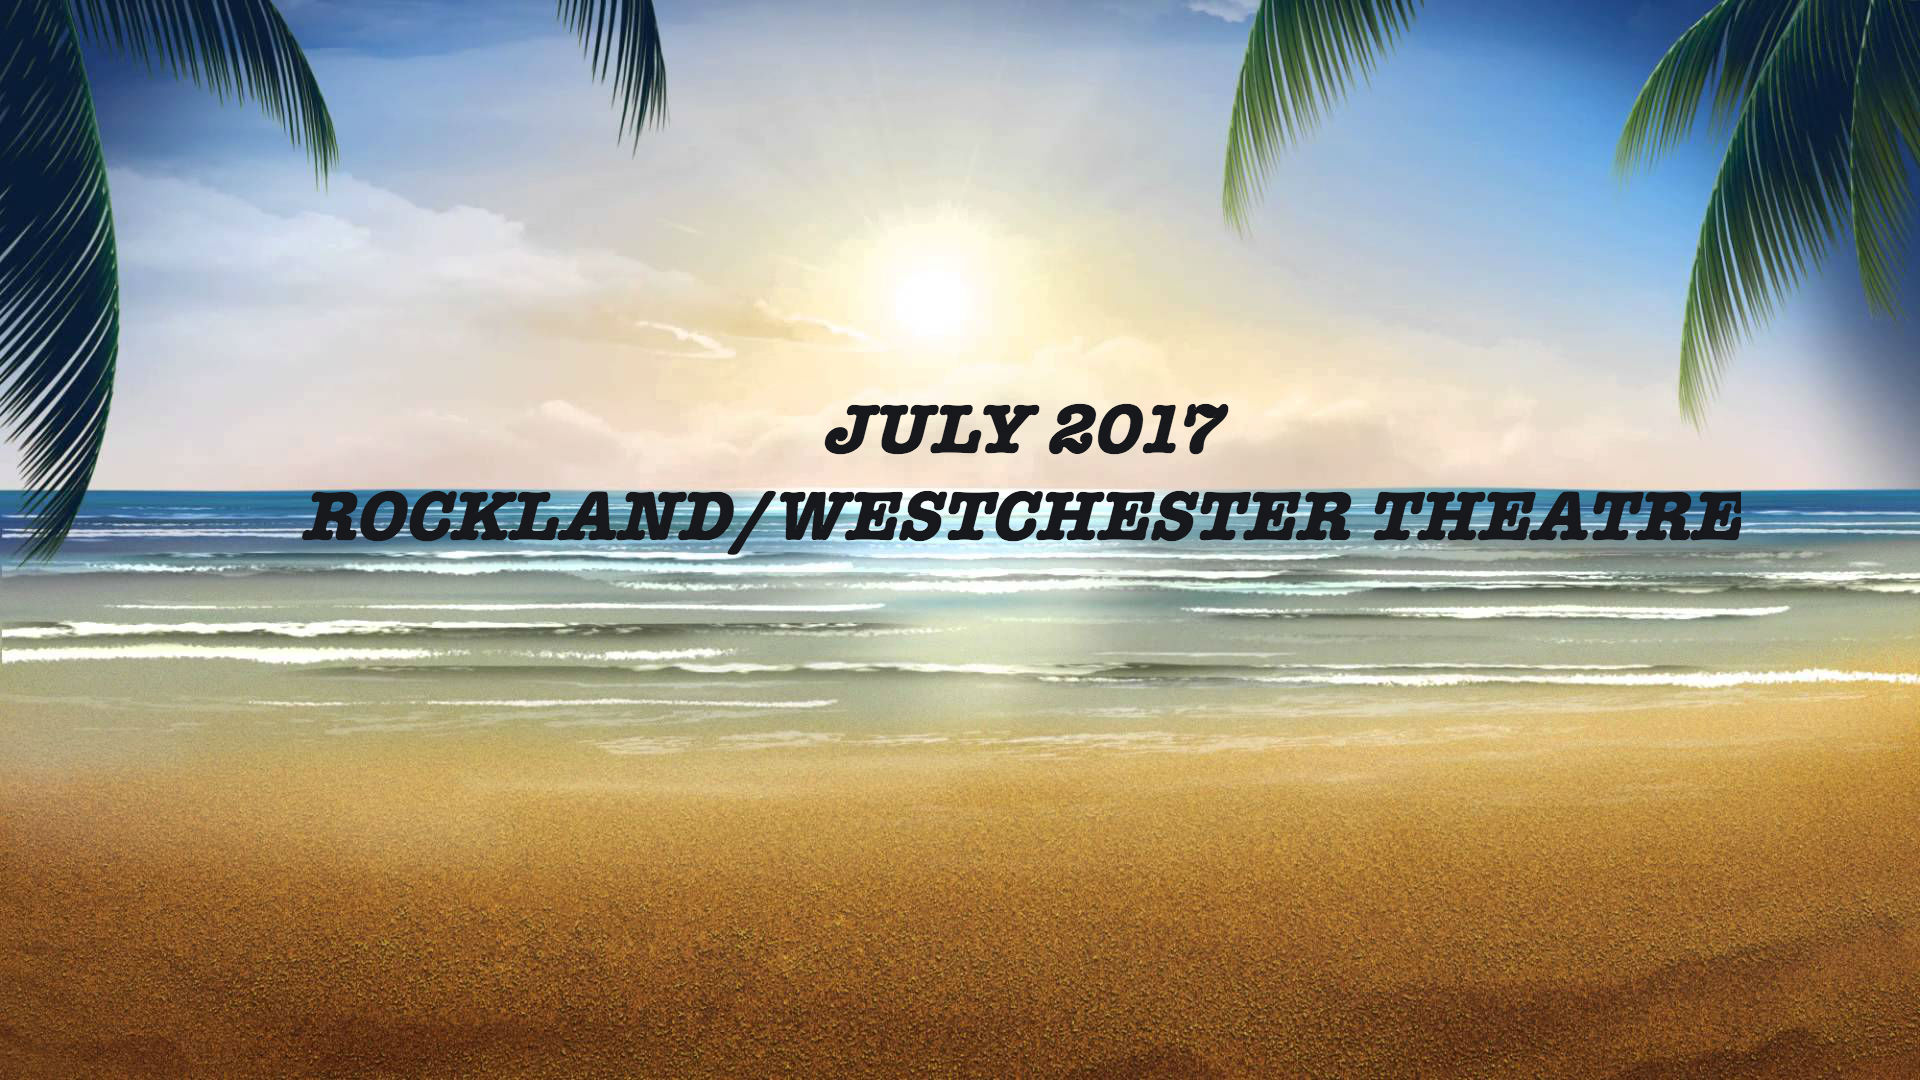 Announcing July 2017 Theatre Events for in Rockland/Westchester